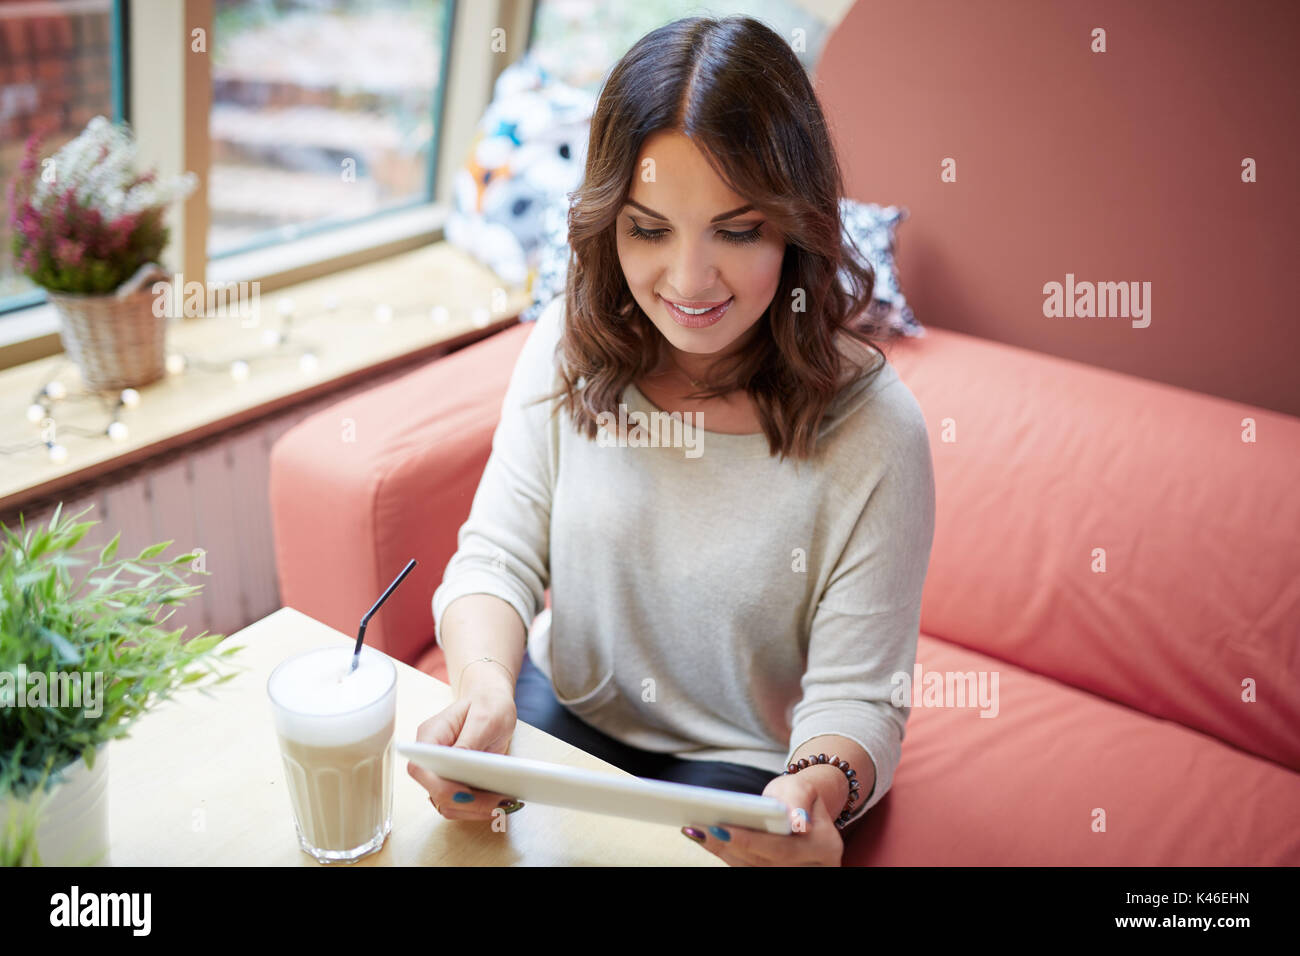 Portrait of young happy woman reading ebook at cafe. - Stock Image